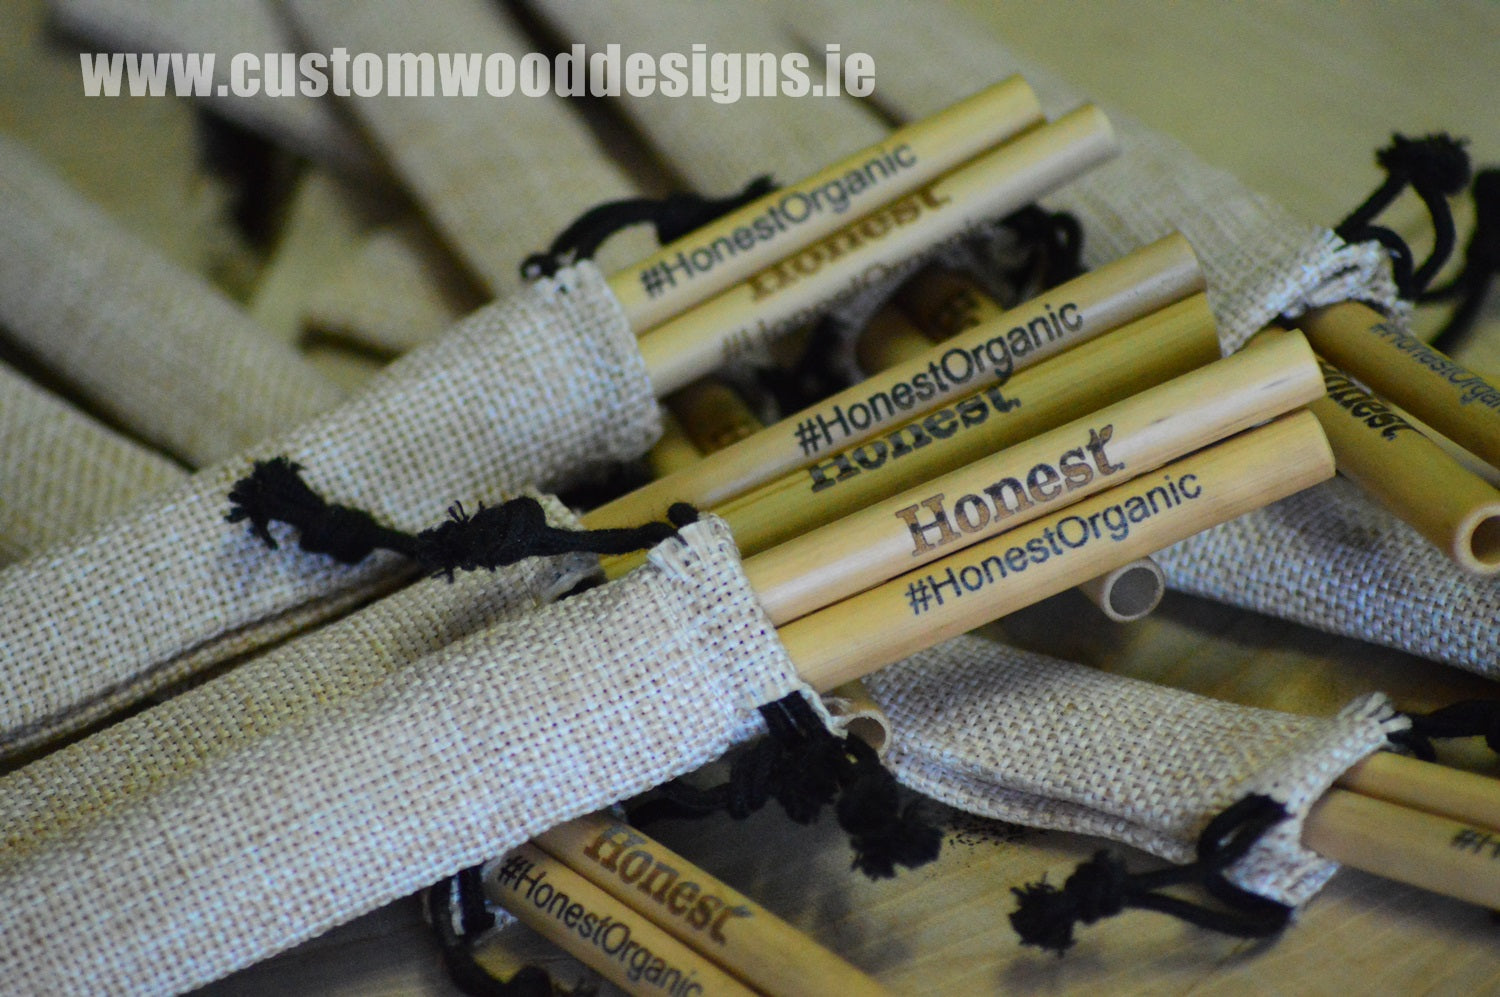 staw engraving eco product Laser Engraving Laser Cutting Ireland custom wood designs branding and promotional products send worldwide shipping Irish products send worldwide irish gift irish produce manufacturer dublin gary byrne klaudia byrne